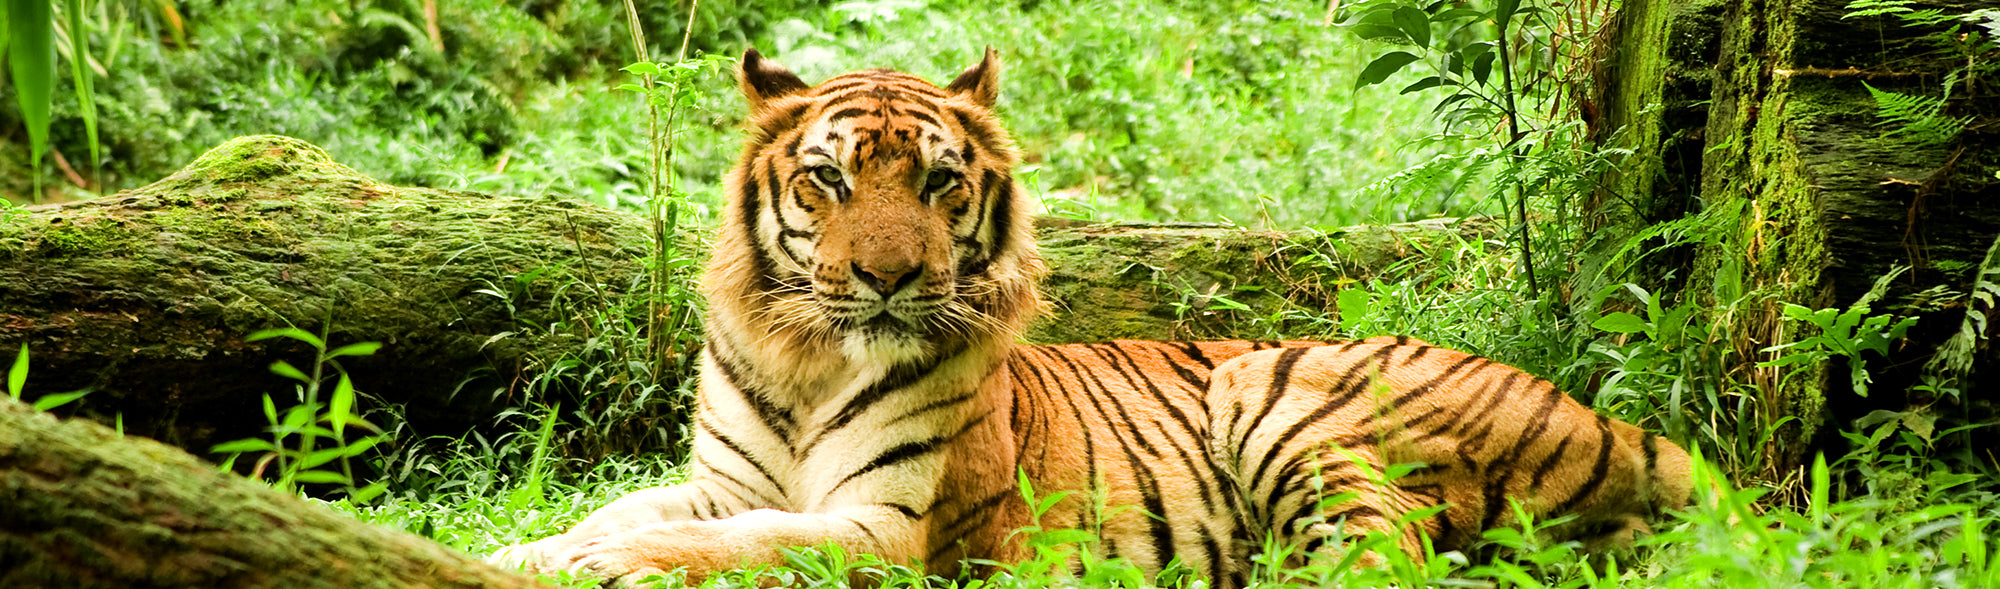 Fun facts about Tigers